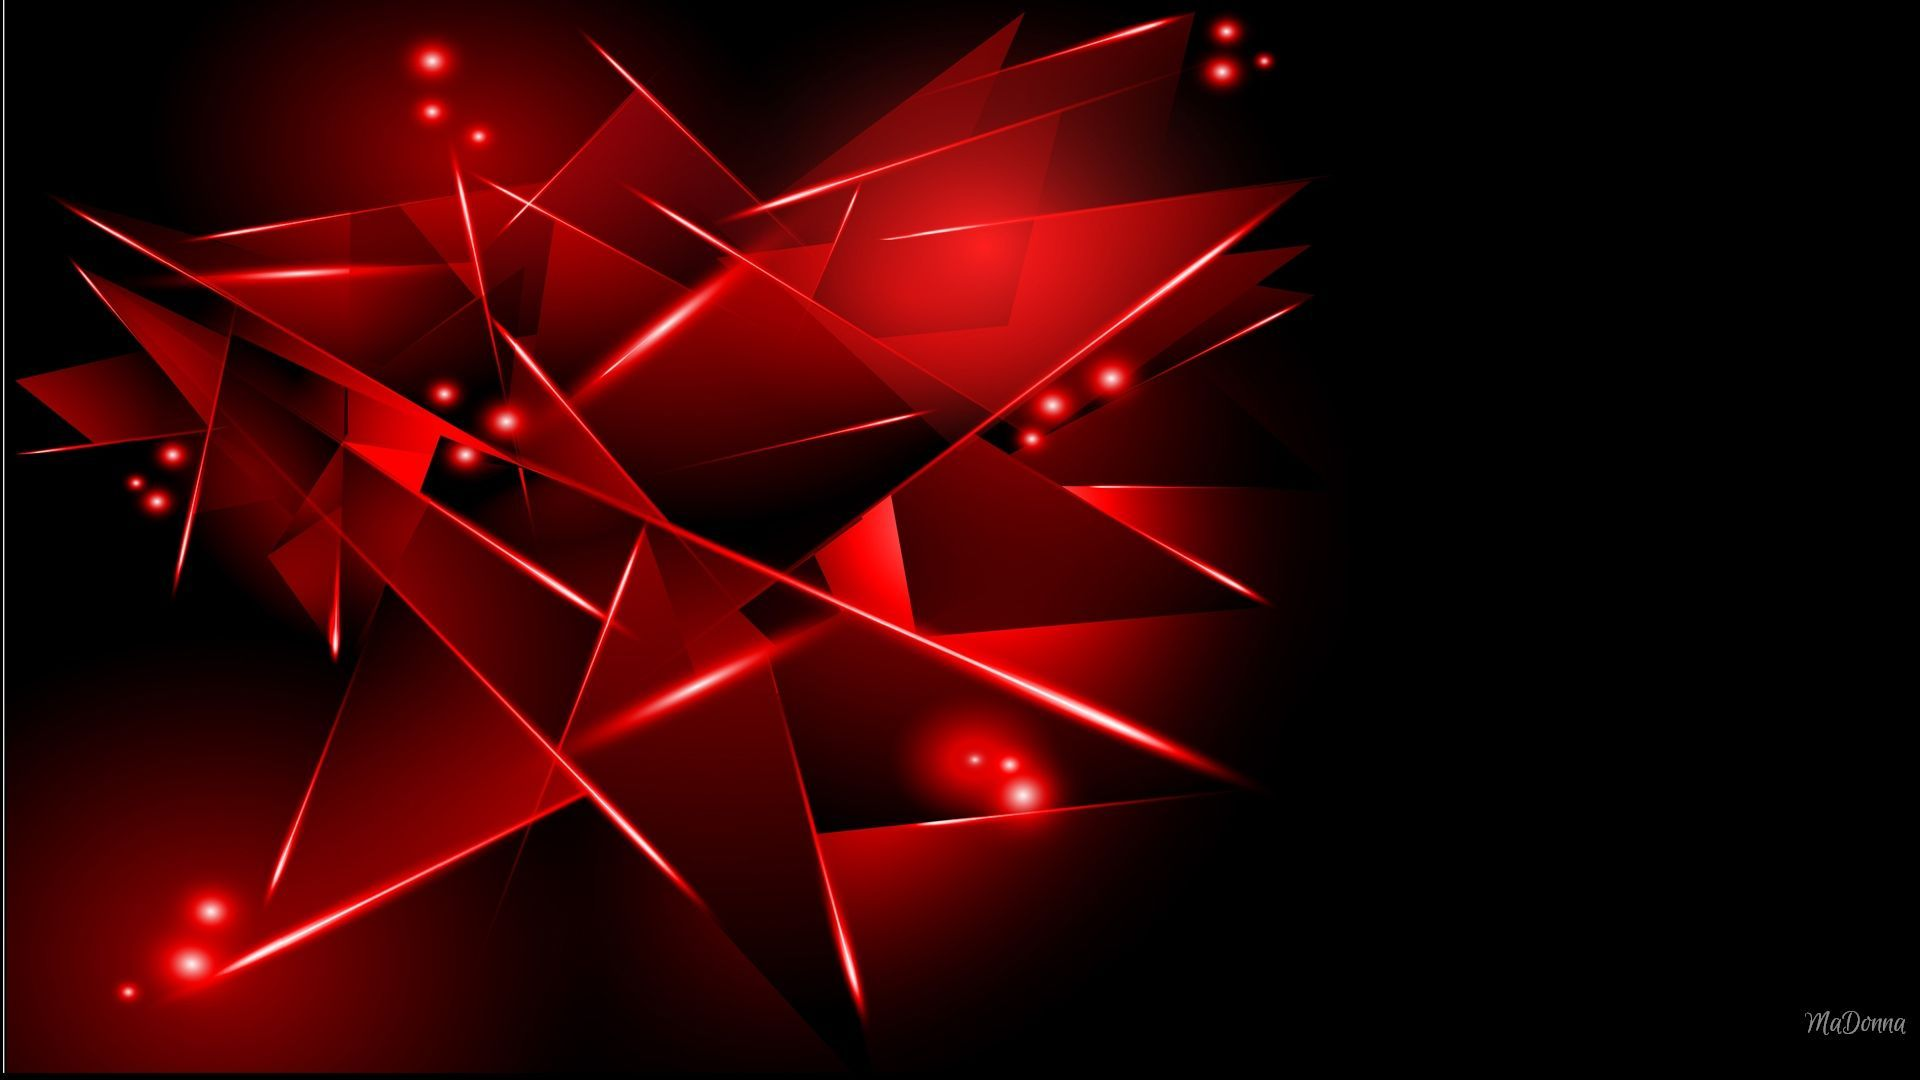 Black And Red Wallpaper 1920x1080 878321 Hd Wallpaper